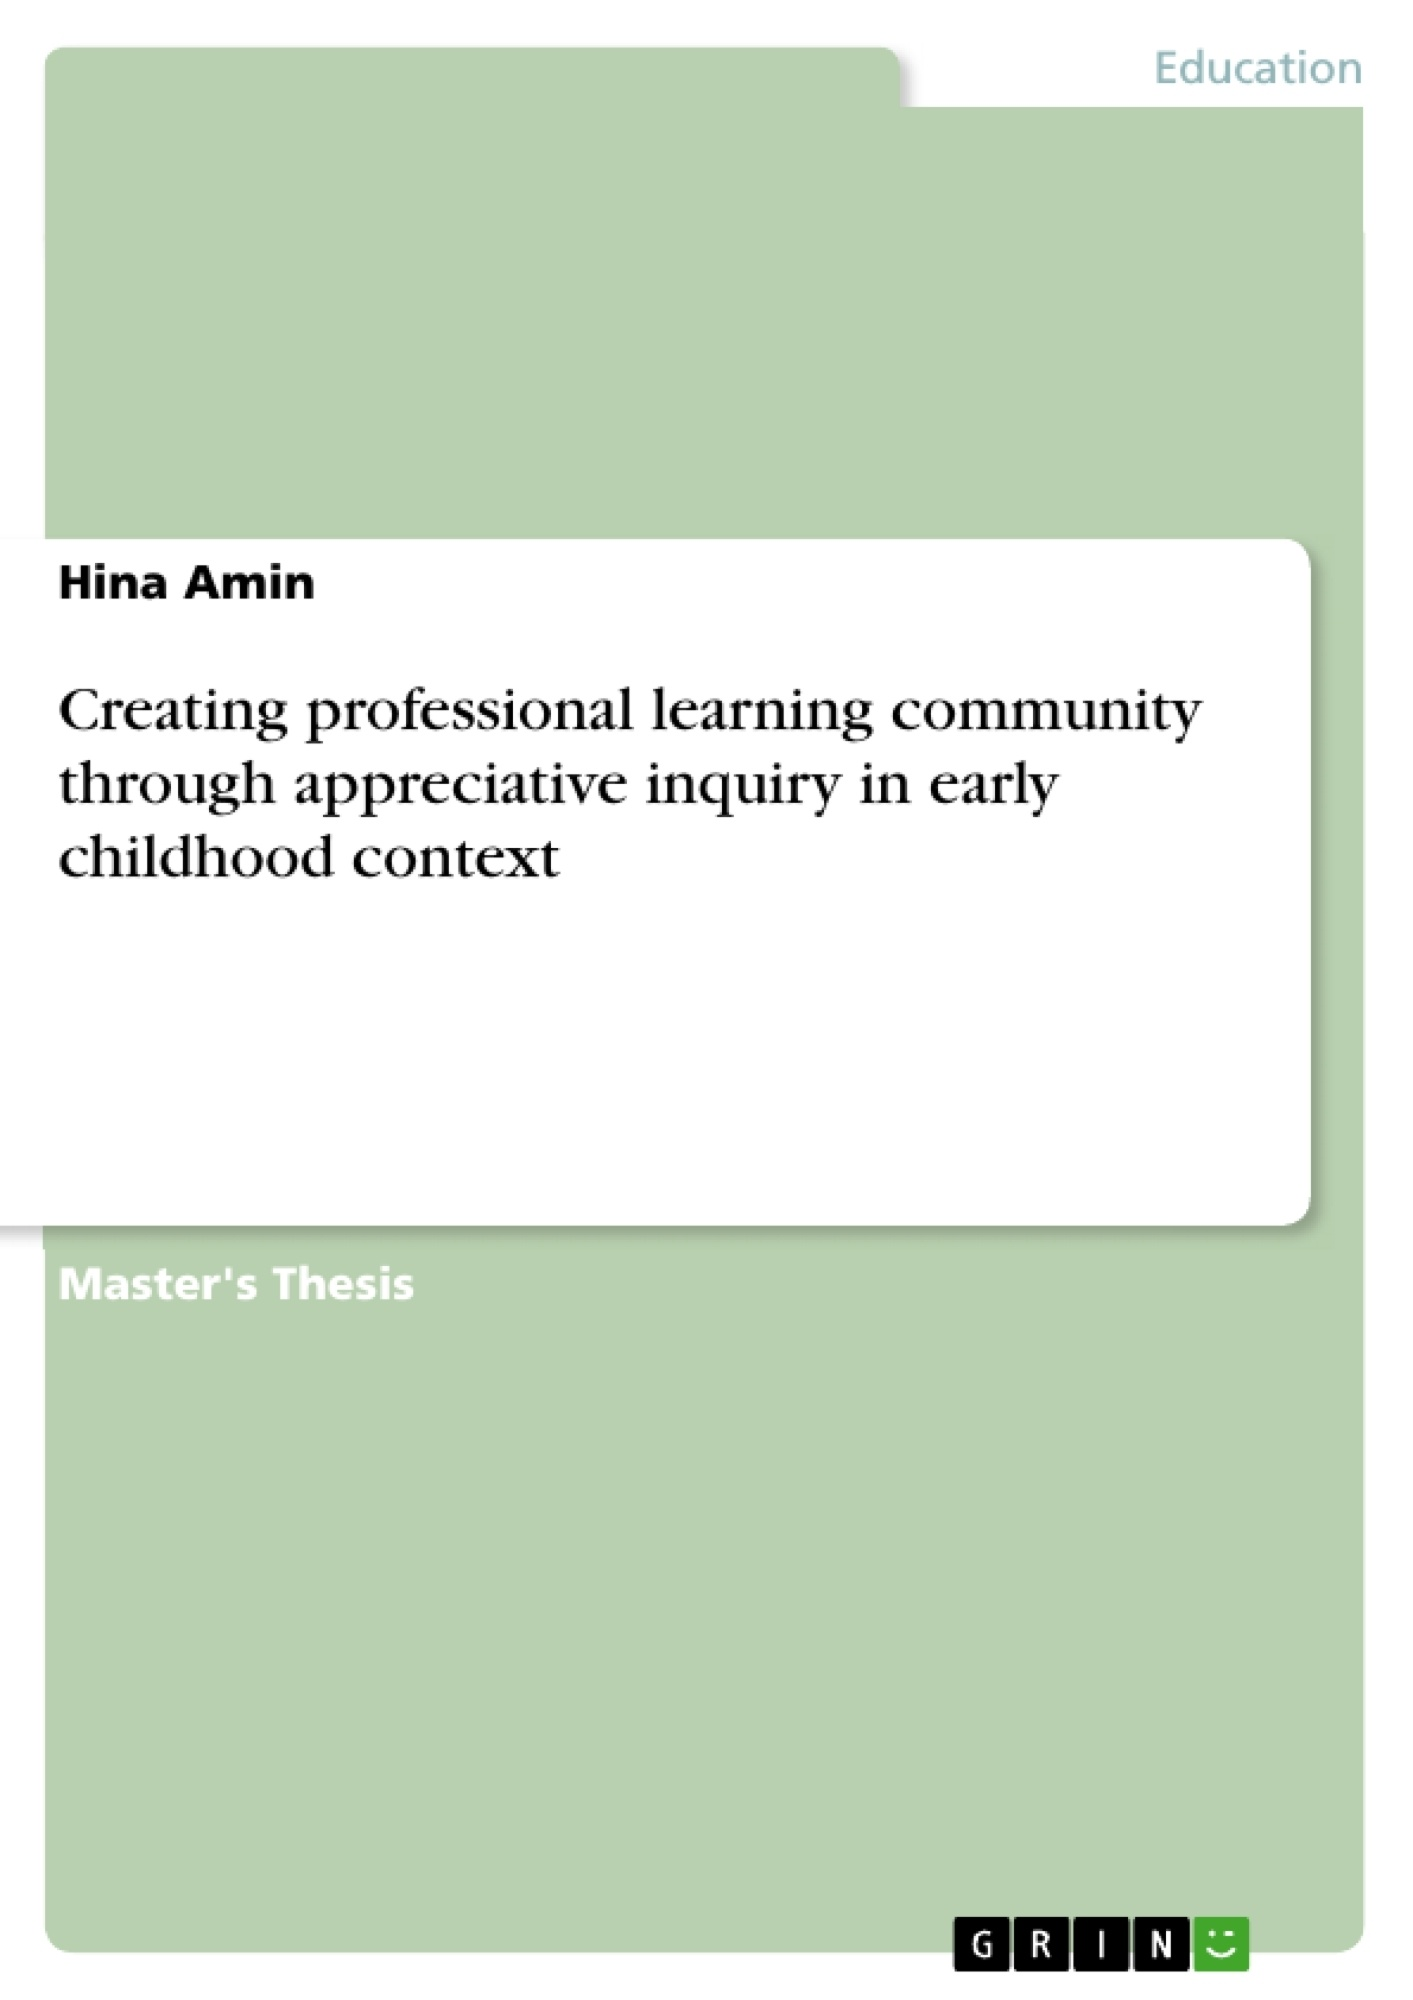 Title: Creating professional learning community through appreciative inquiry in early childhood context